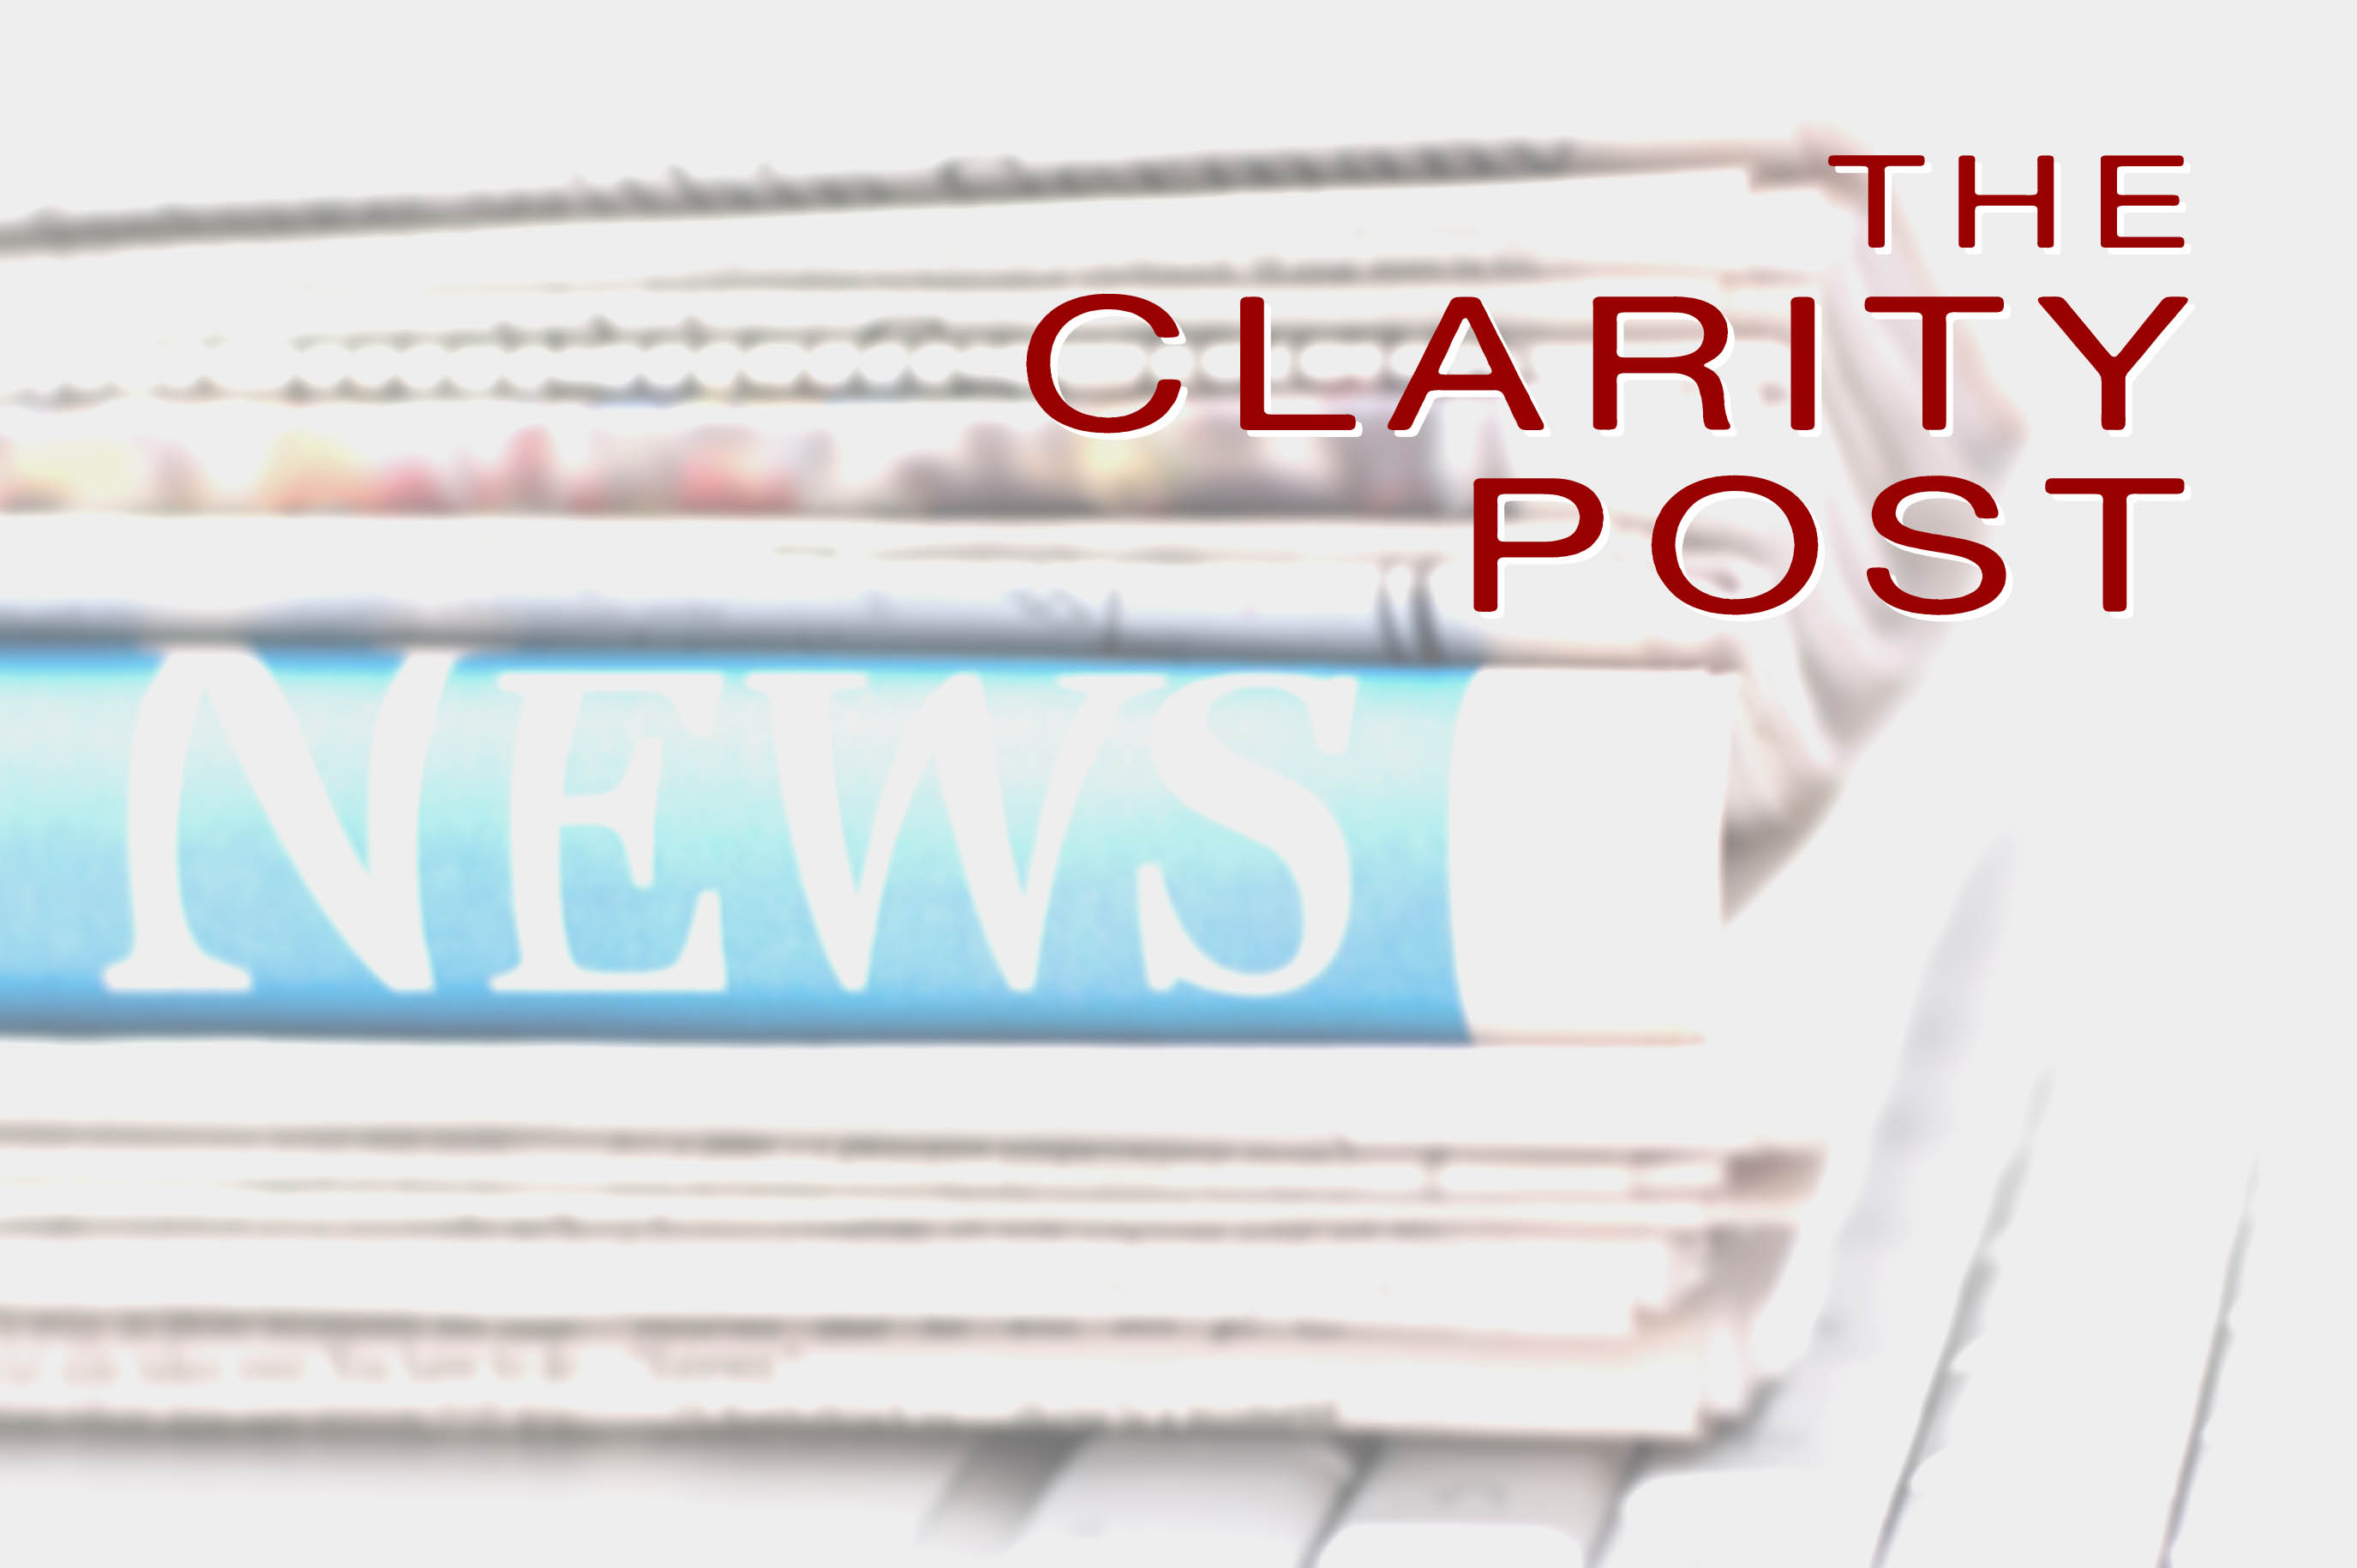 The Clarity Post Healthcare Newsletter